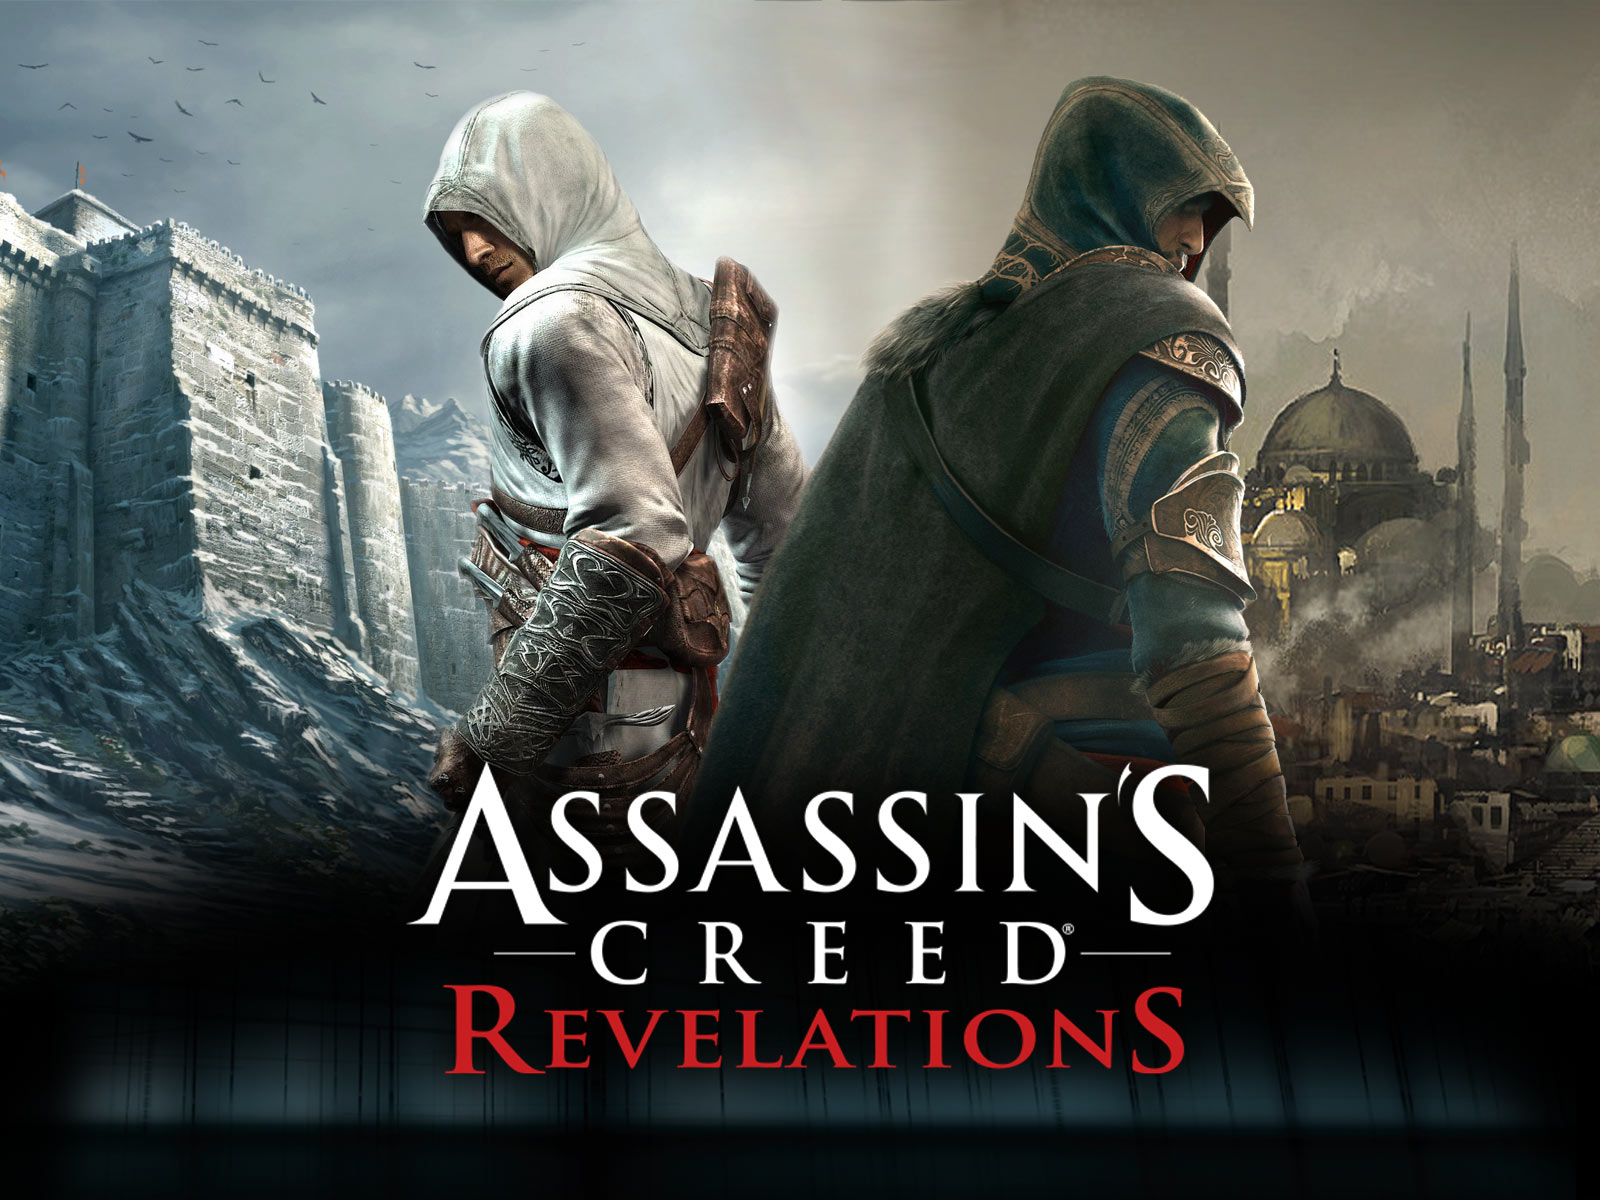 Assassin S Creed Revelations Hd Desktop Imagebank Biz